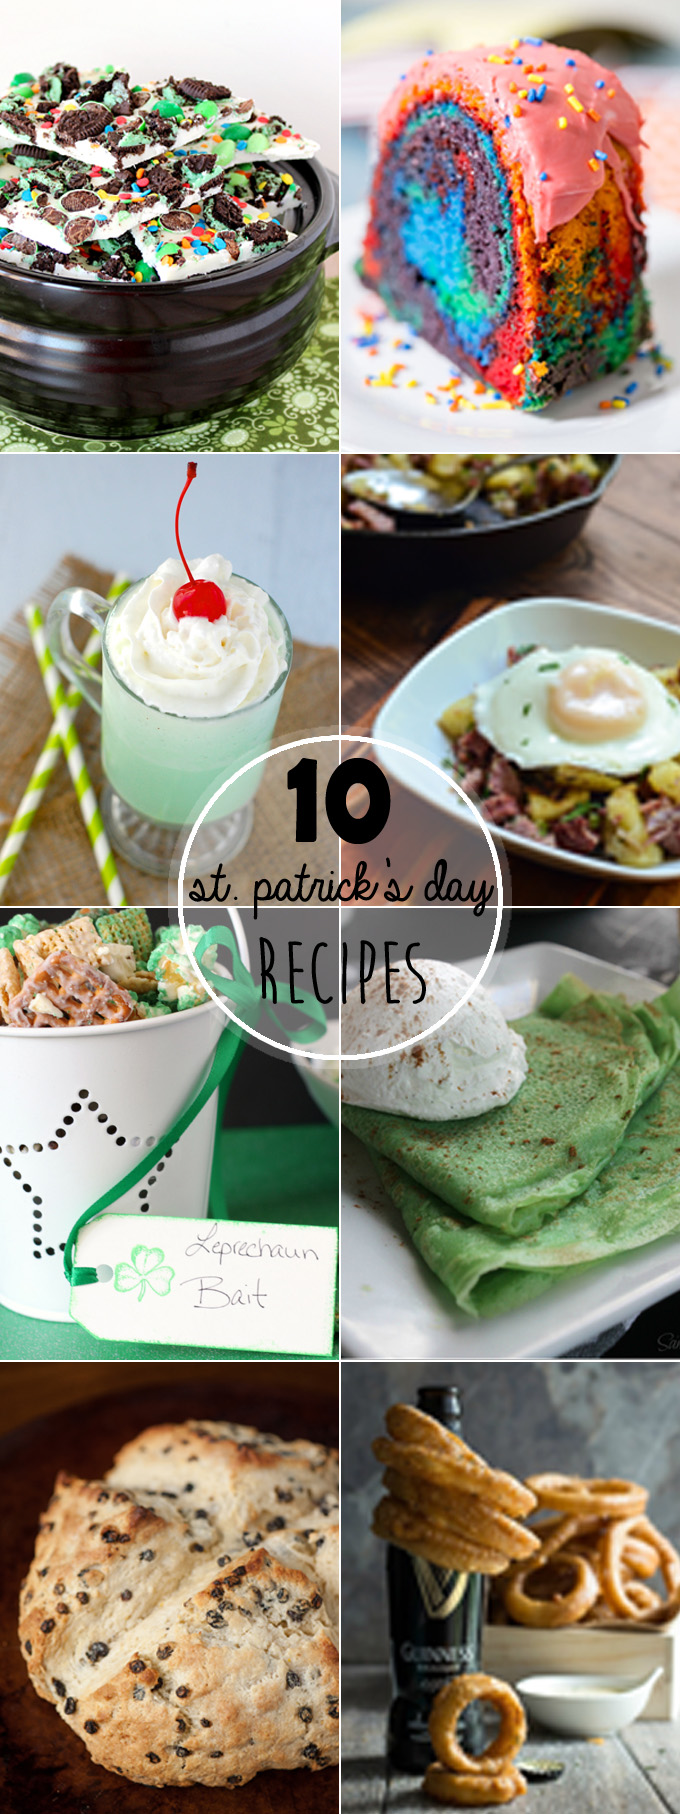 St. Patrick's Day is one of my favorite holidays. I just love the food, so I've rounded up some of the Top St Patrick's Day Recipes.